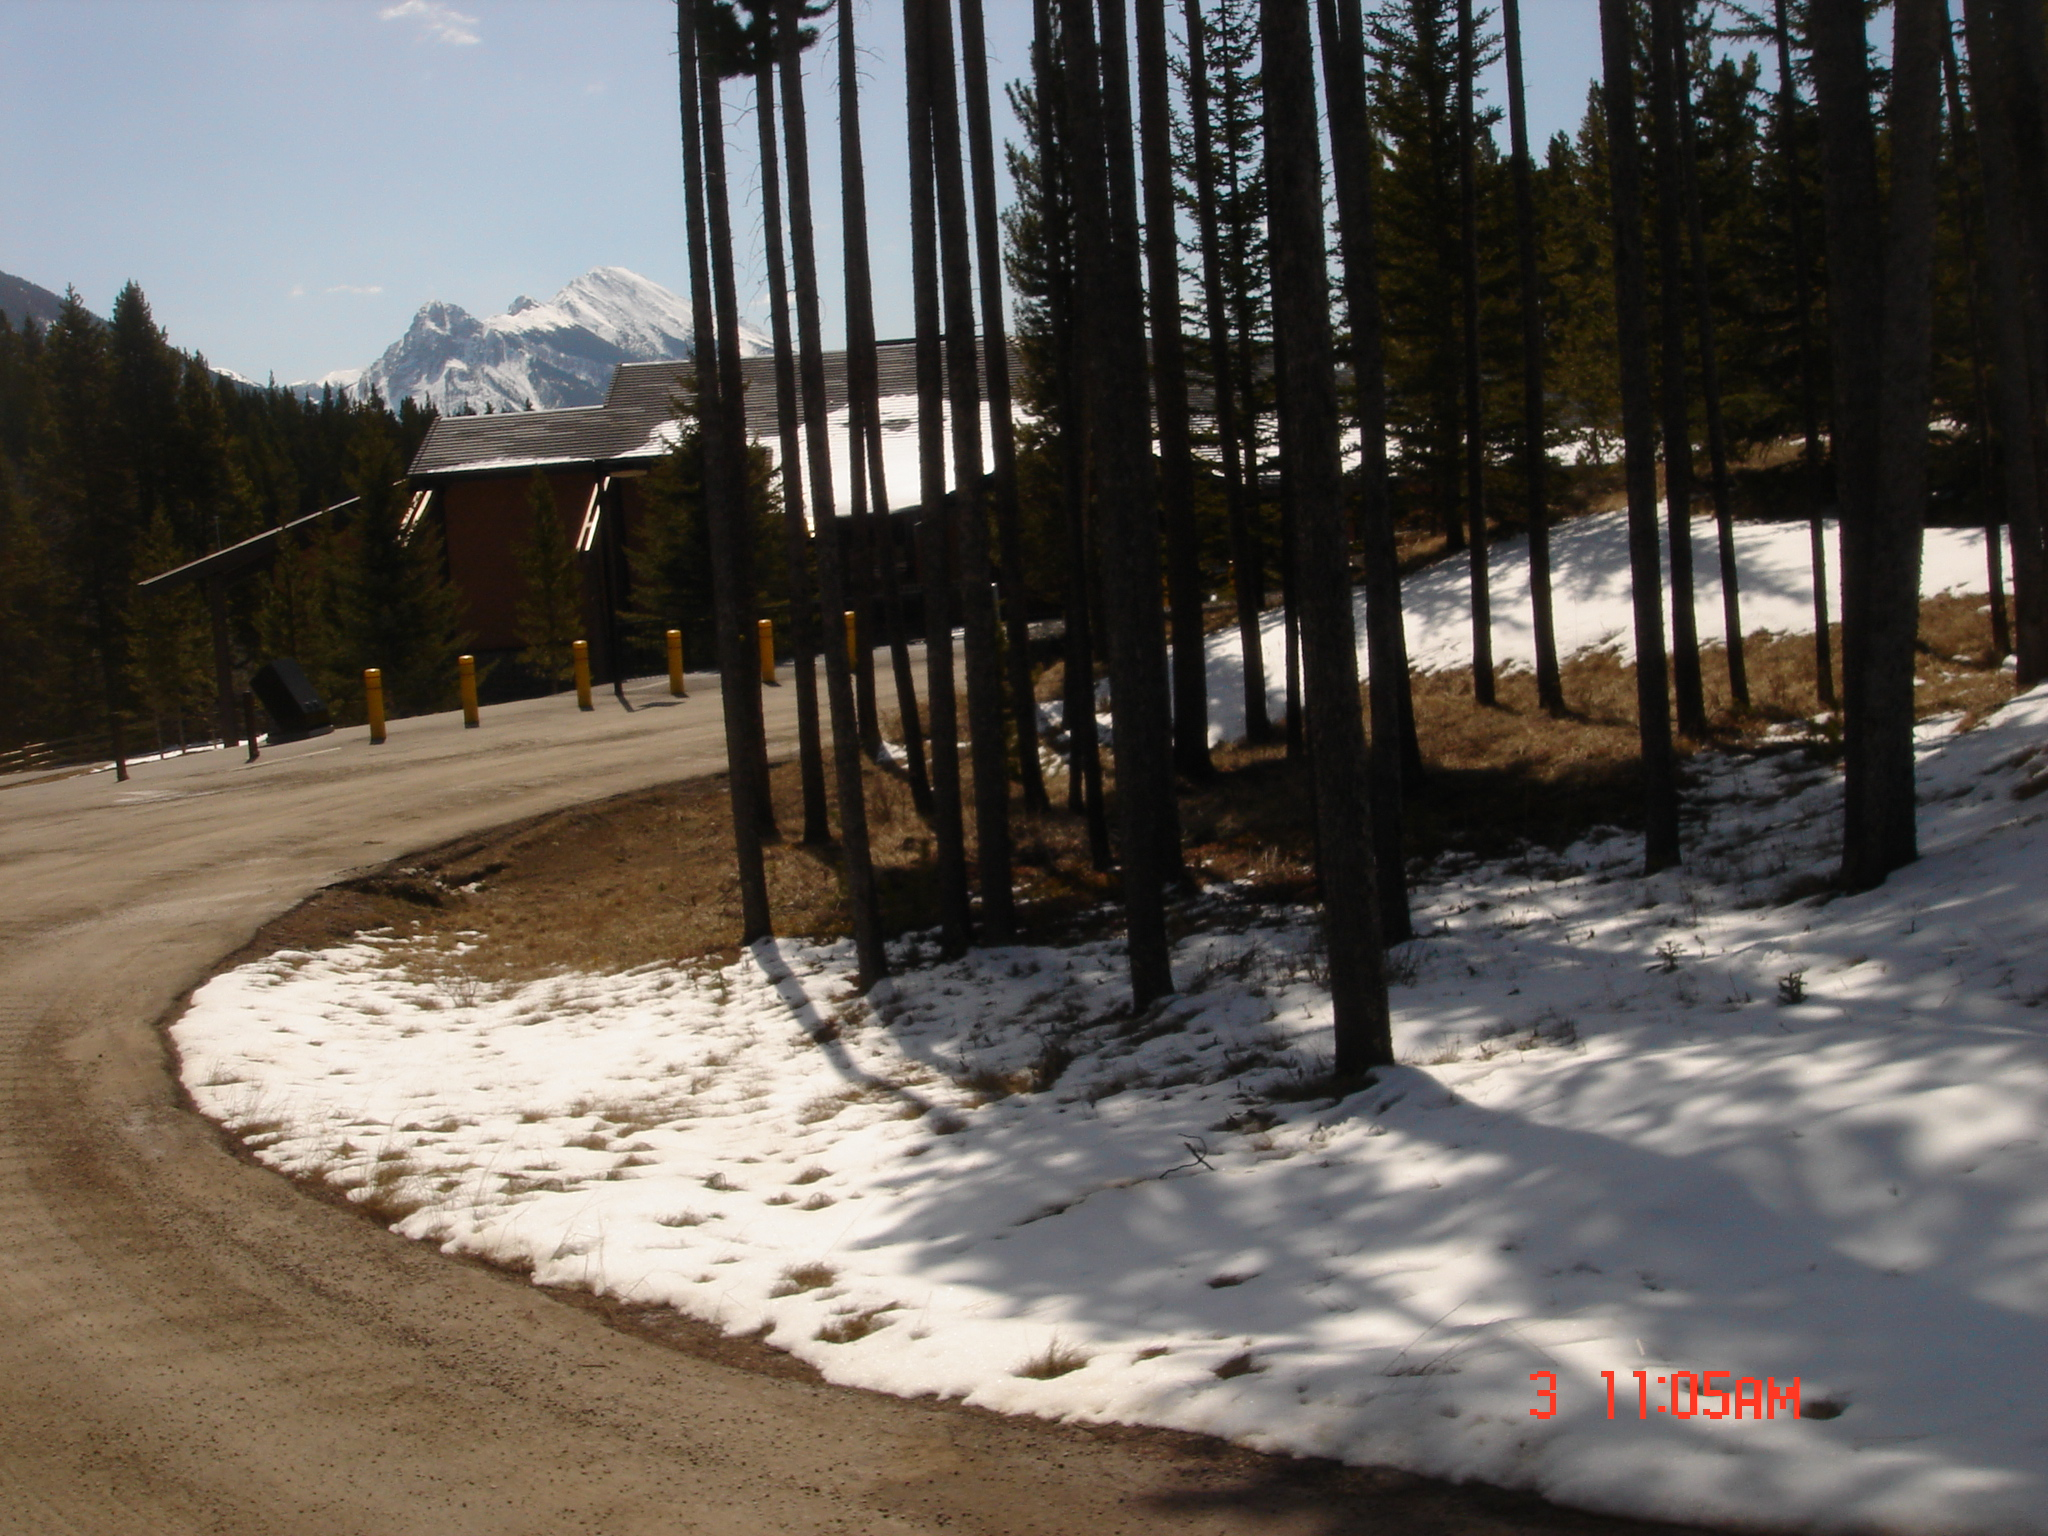 2009-kananaskis-200-ph-3